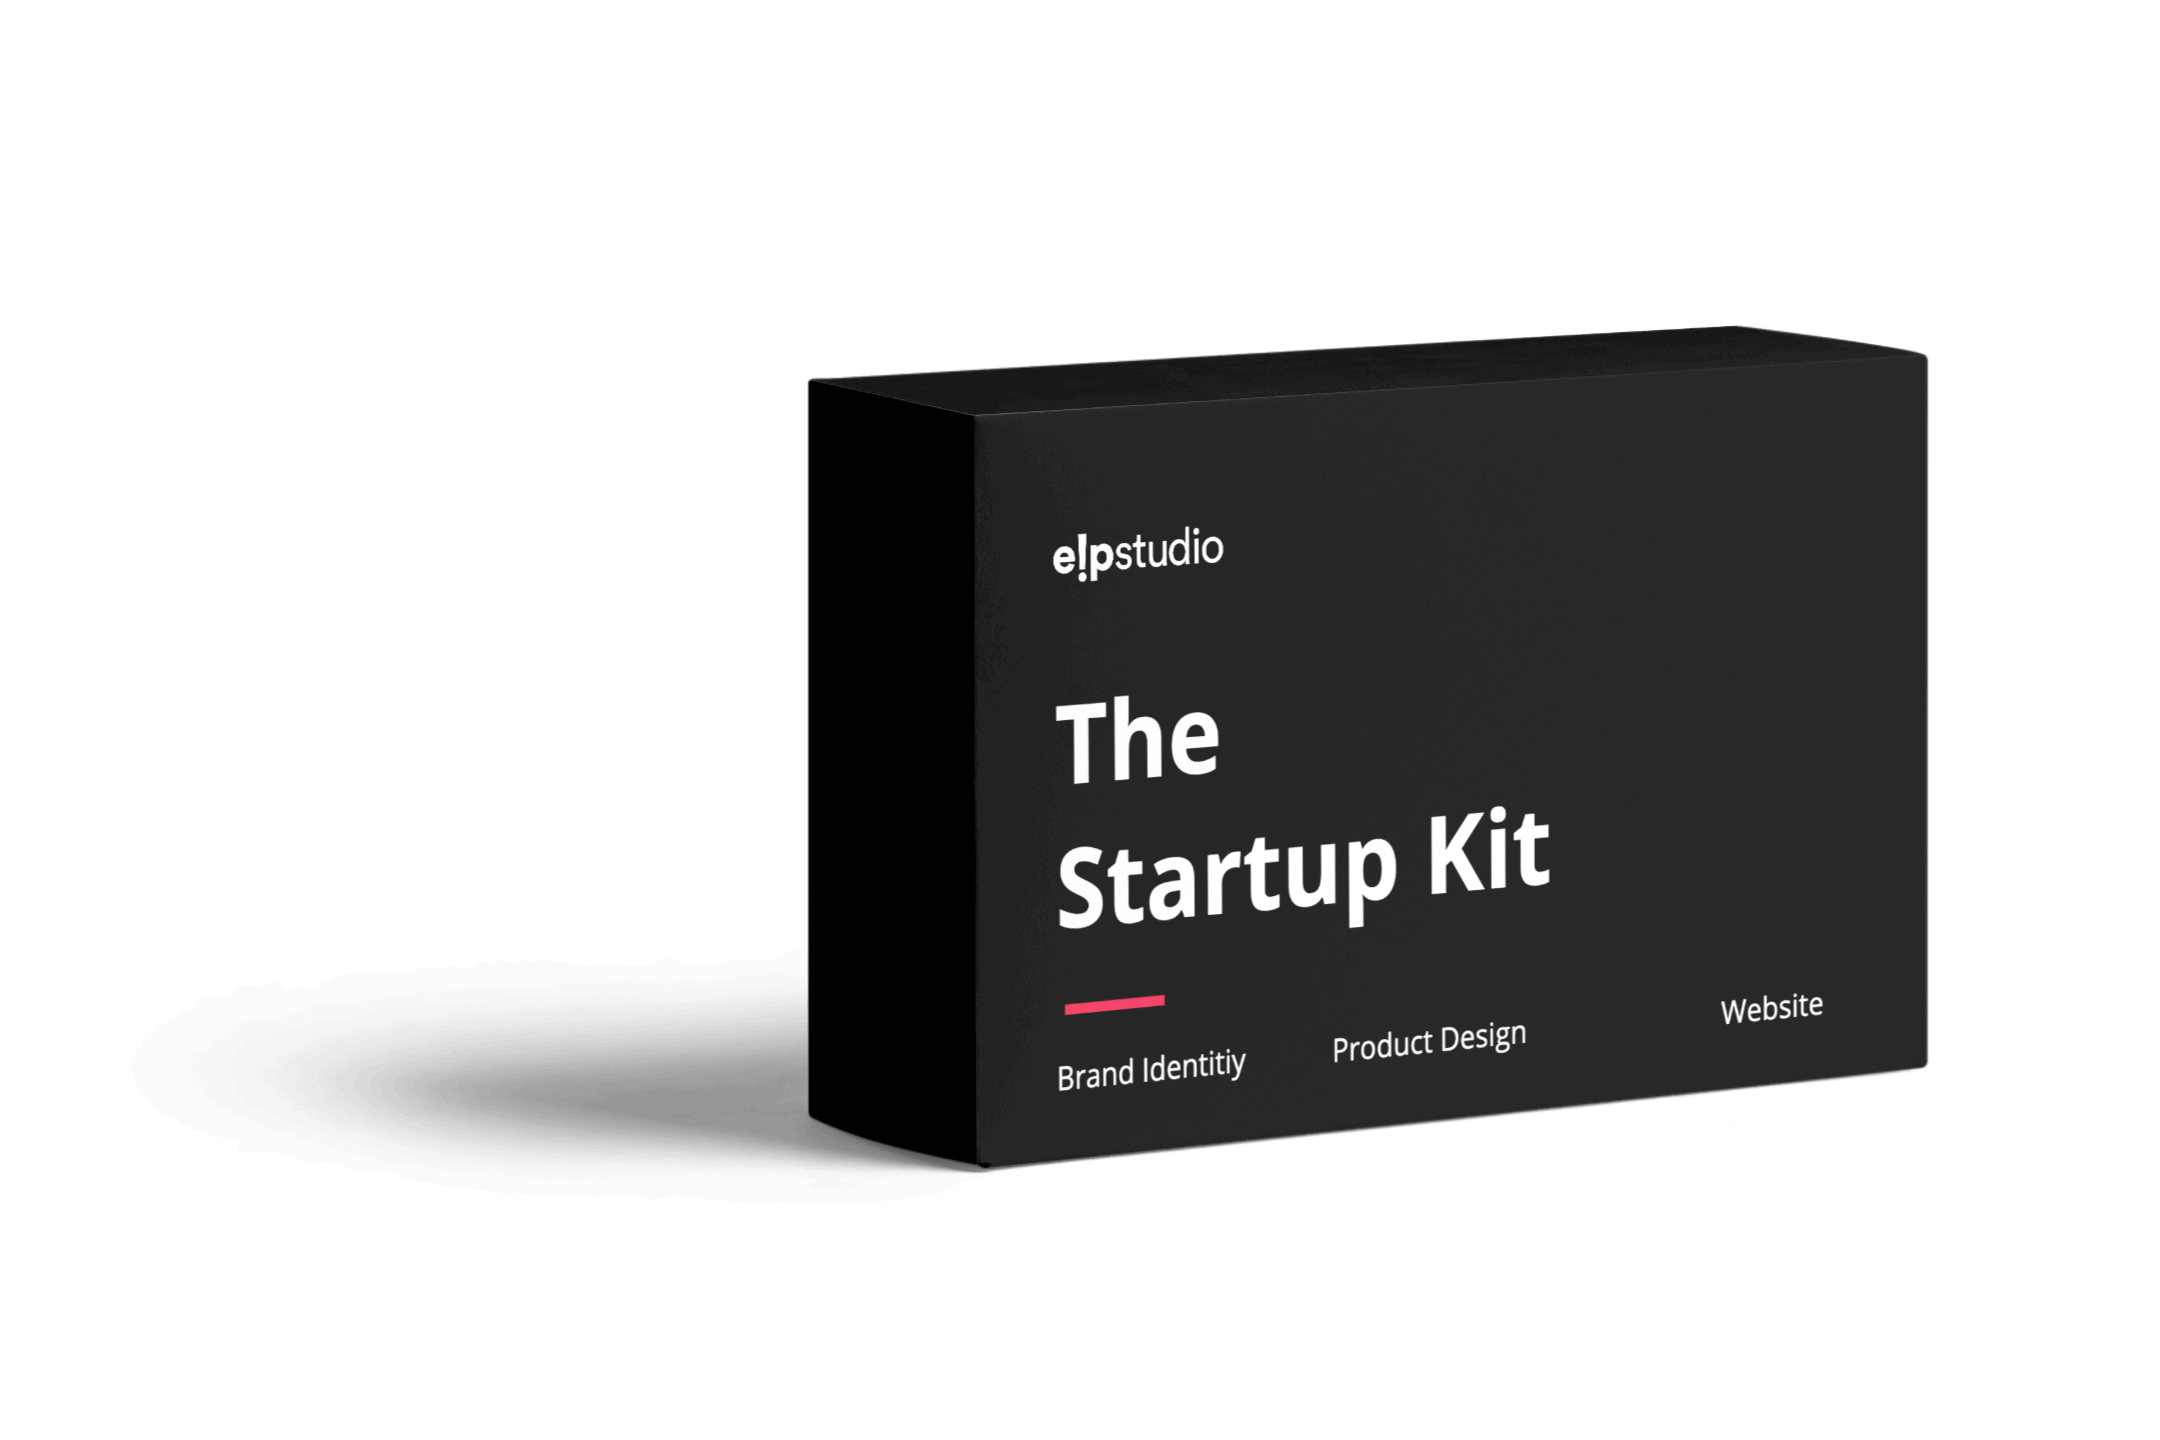 We know startups. We know your dreams, we know your fears and we know how to help you push past your fears to make your dreams happen. We've created a startup kit to help get you in the game with a head start. business improvement kit, design pack, startup kit, startup pack for new startups and business